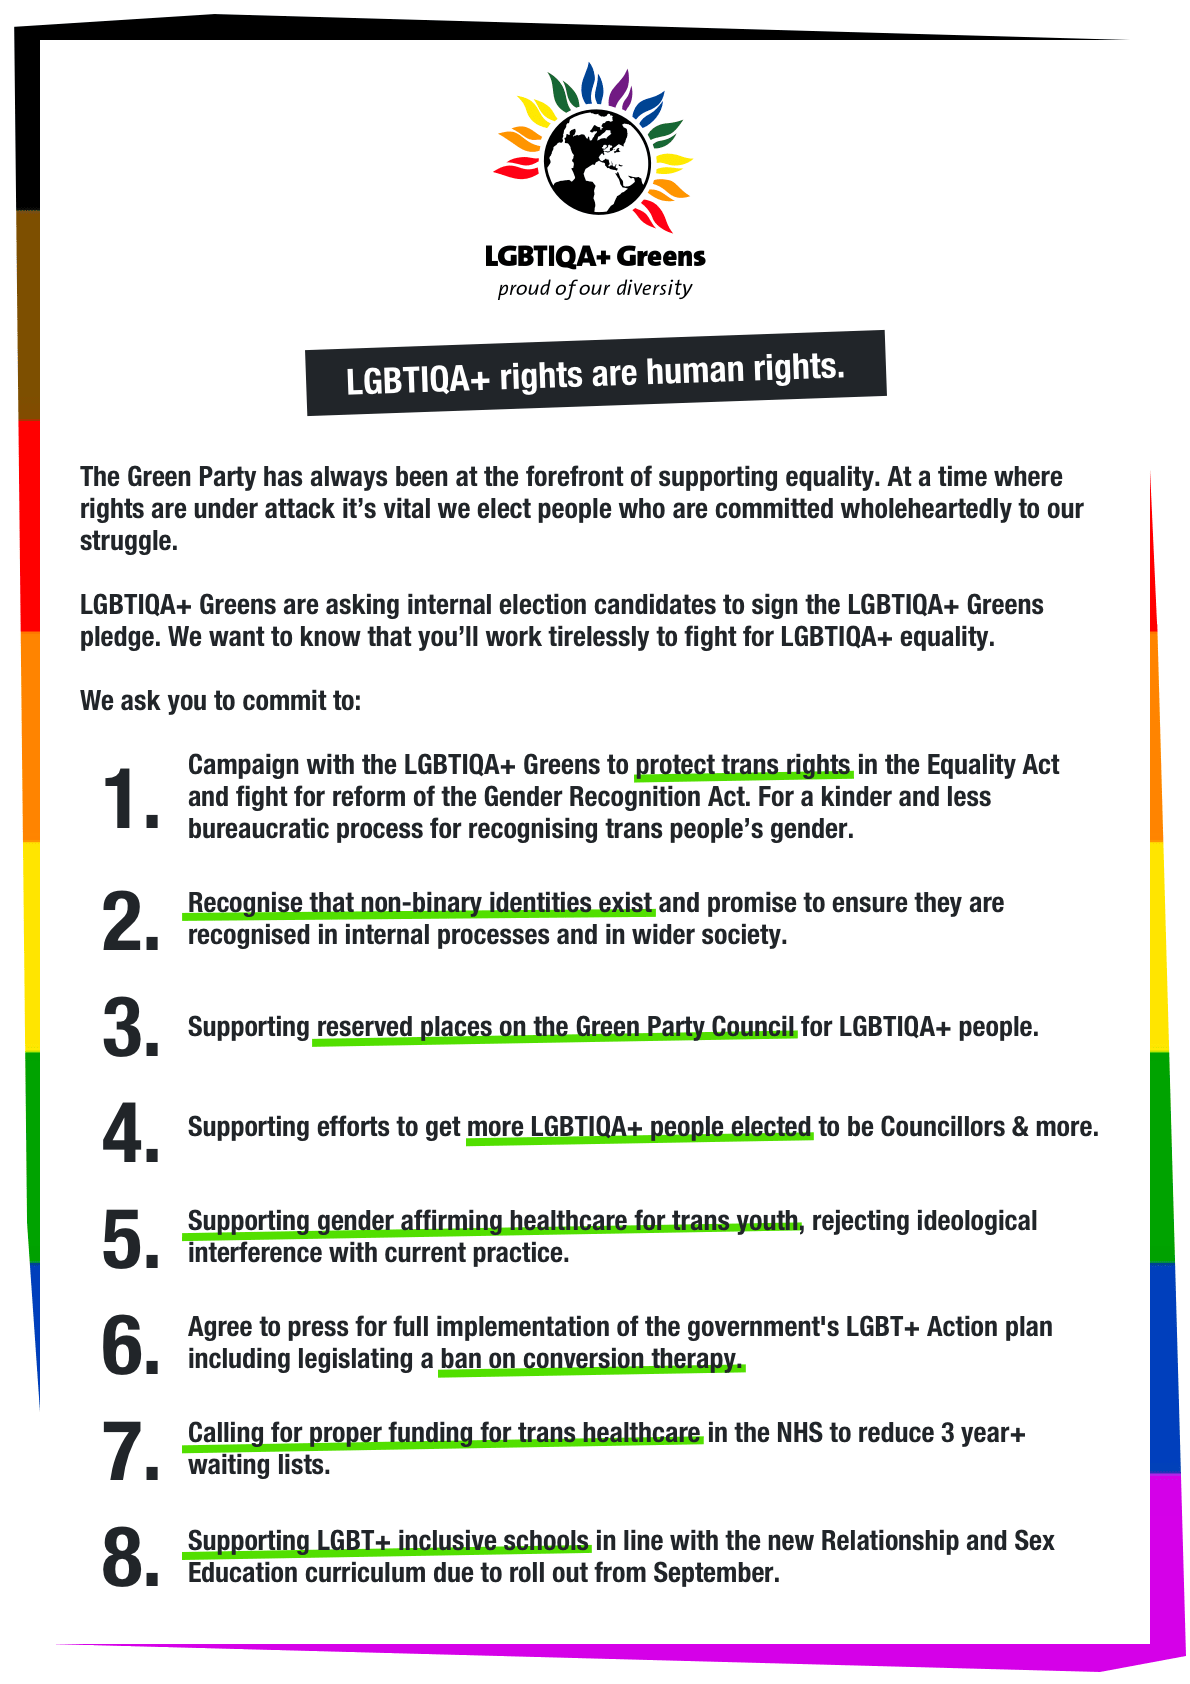 Details of the 8 pledges that LGBTIQA+ Greens asked leadership candidates to sign up to.